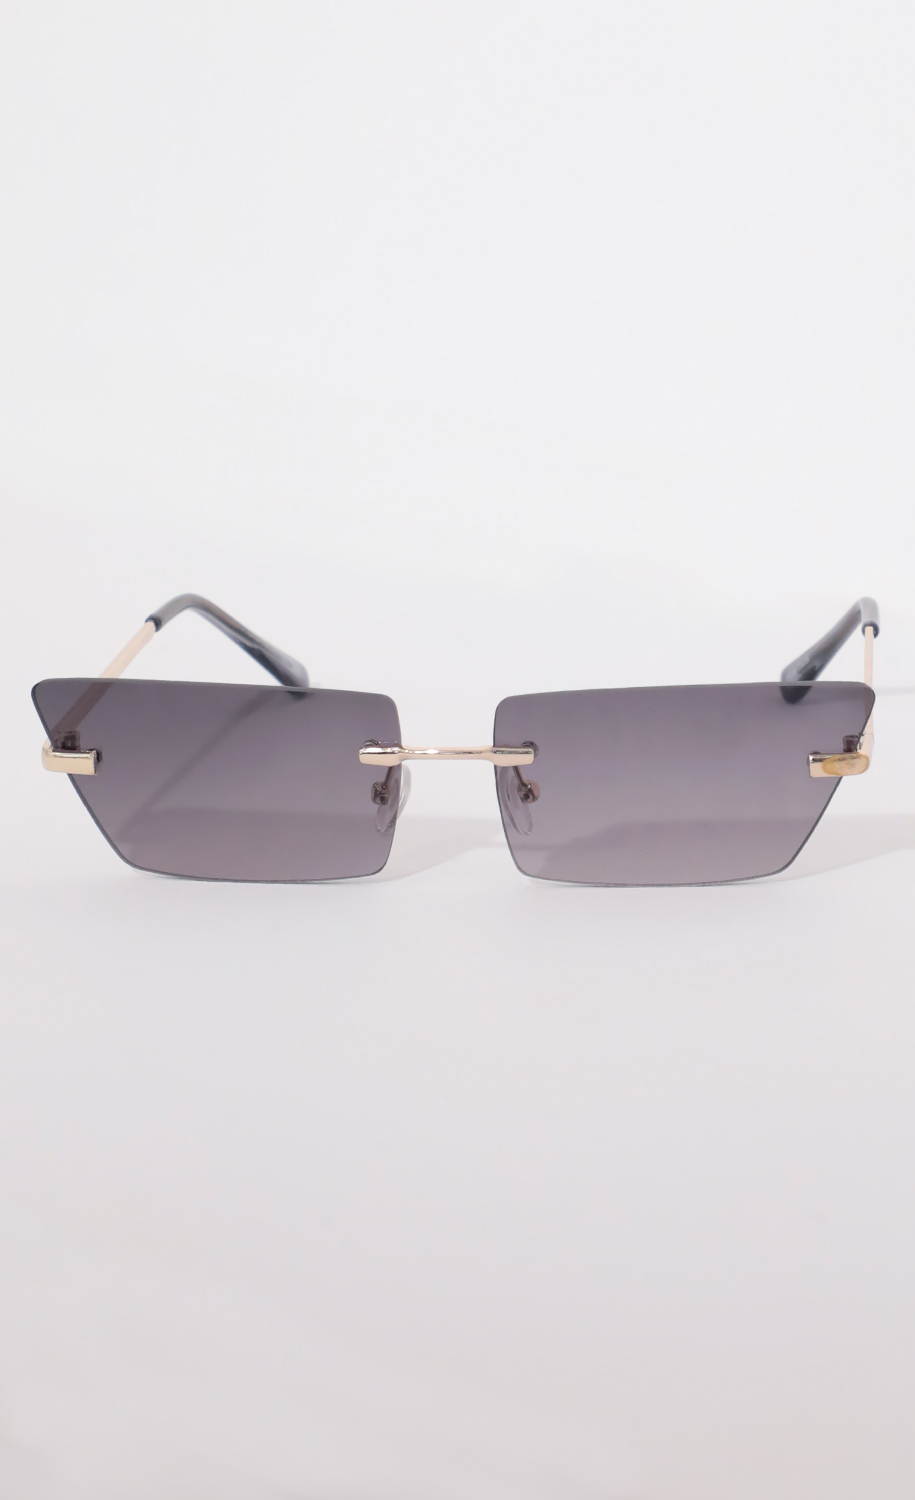 Fairfax Rimless Sunglasses in Smoke